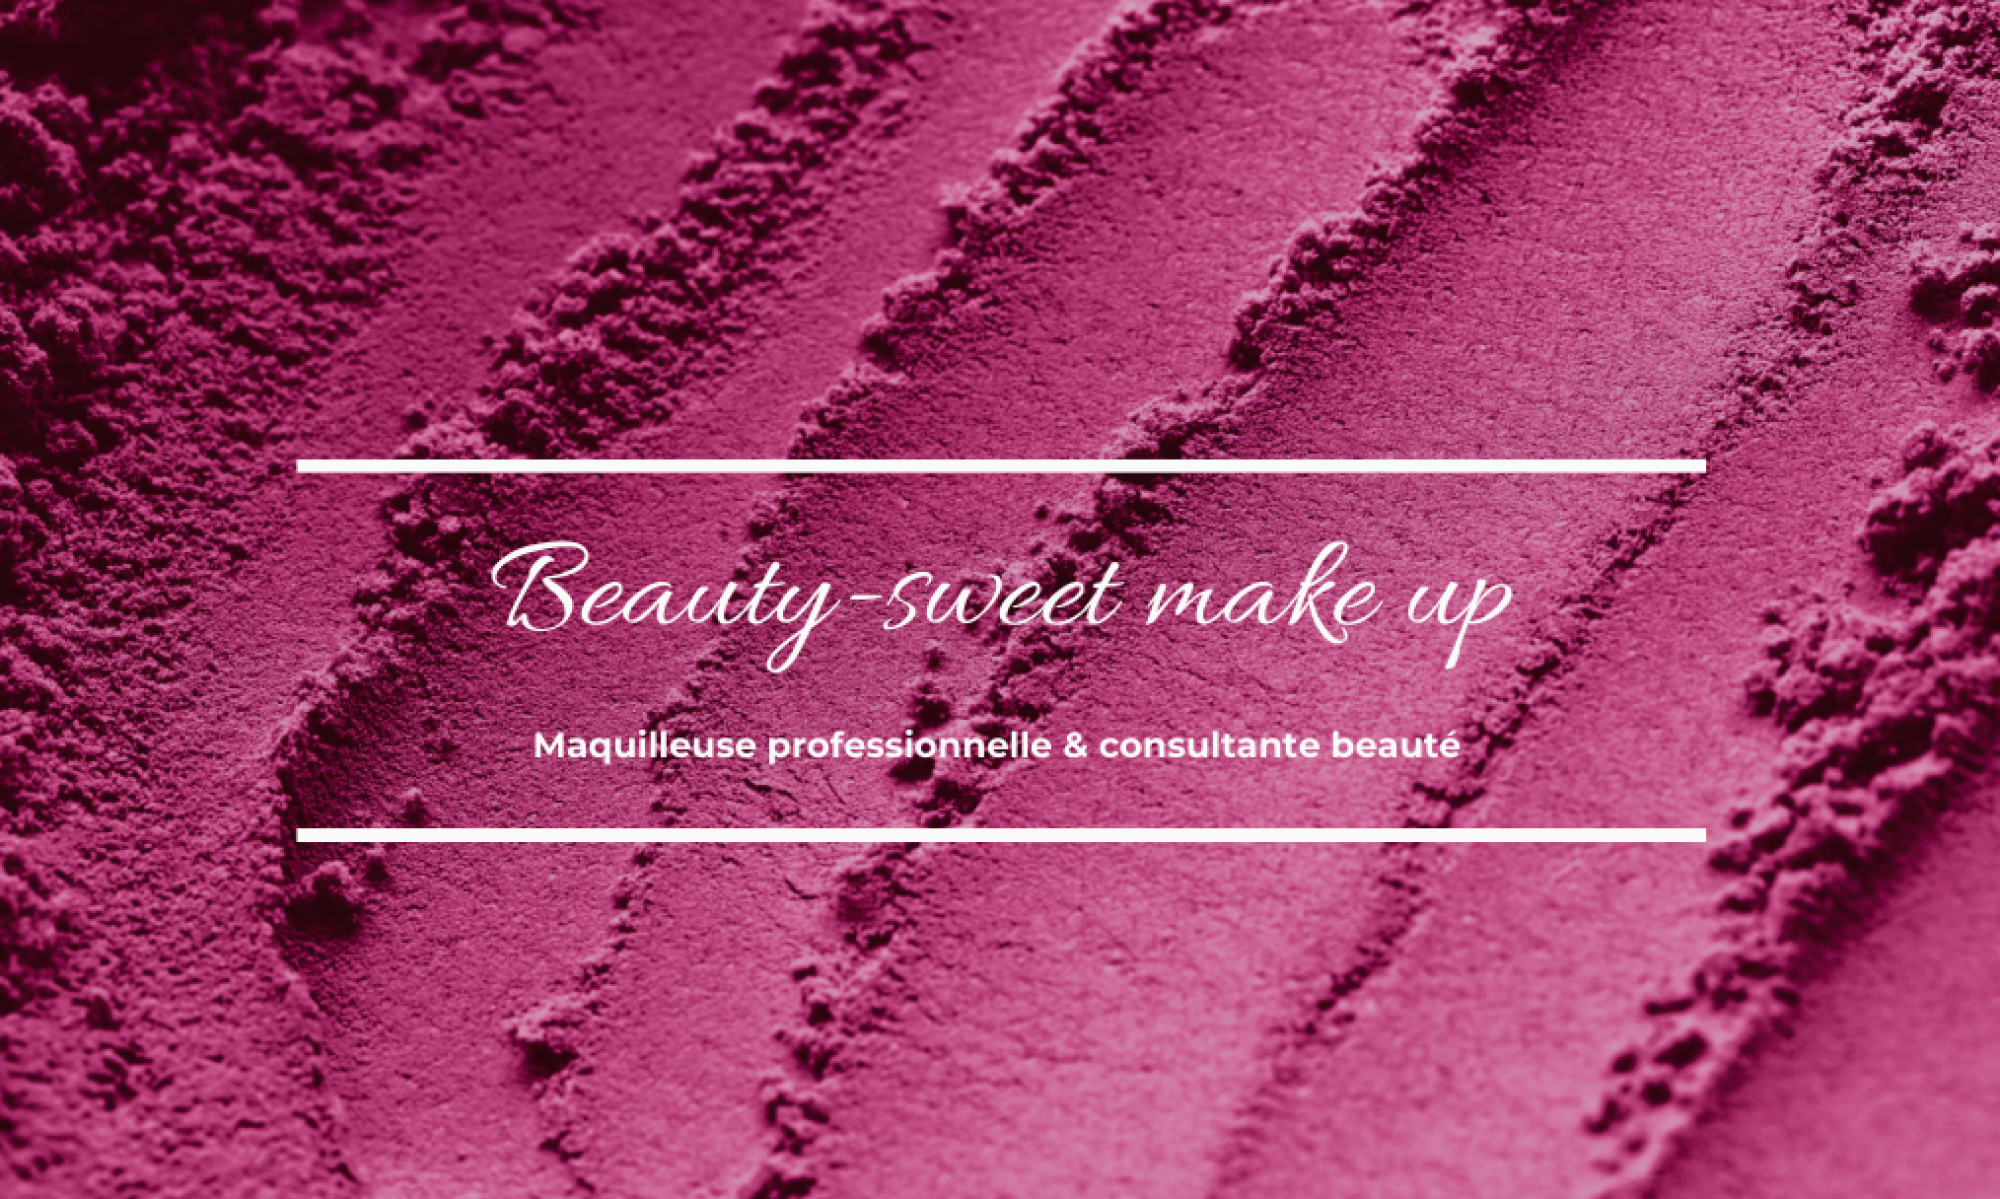 Beauty Sweet Make up